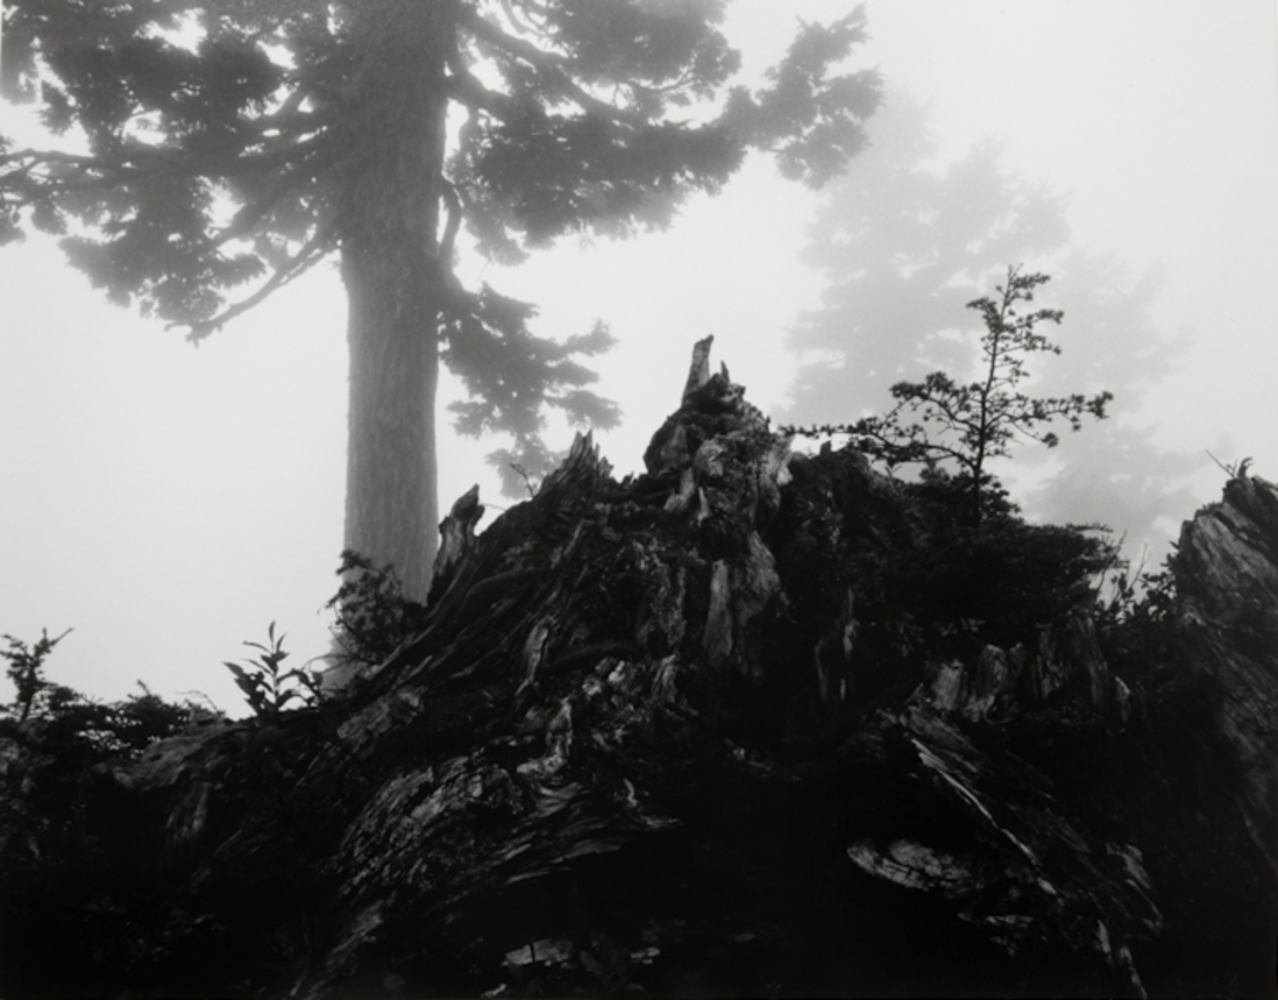 Ansel adams   tree  stump and mist.thumb